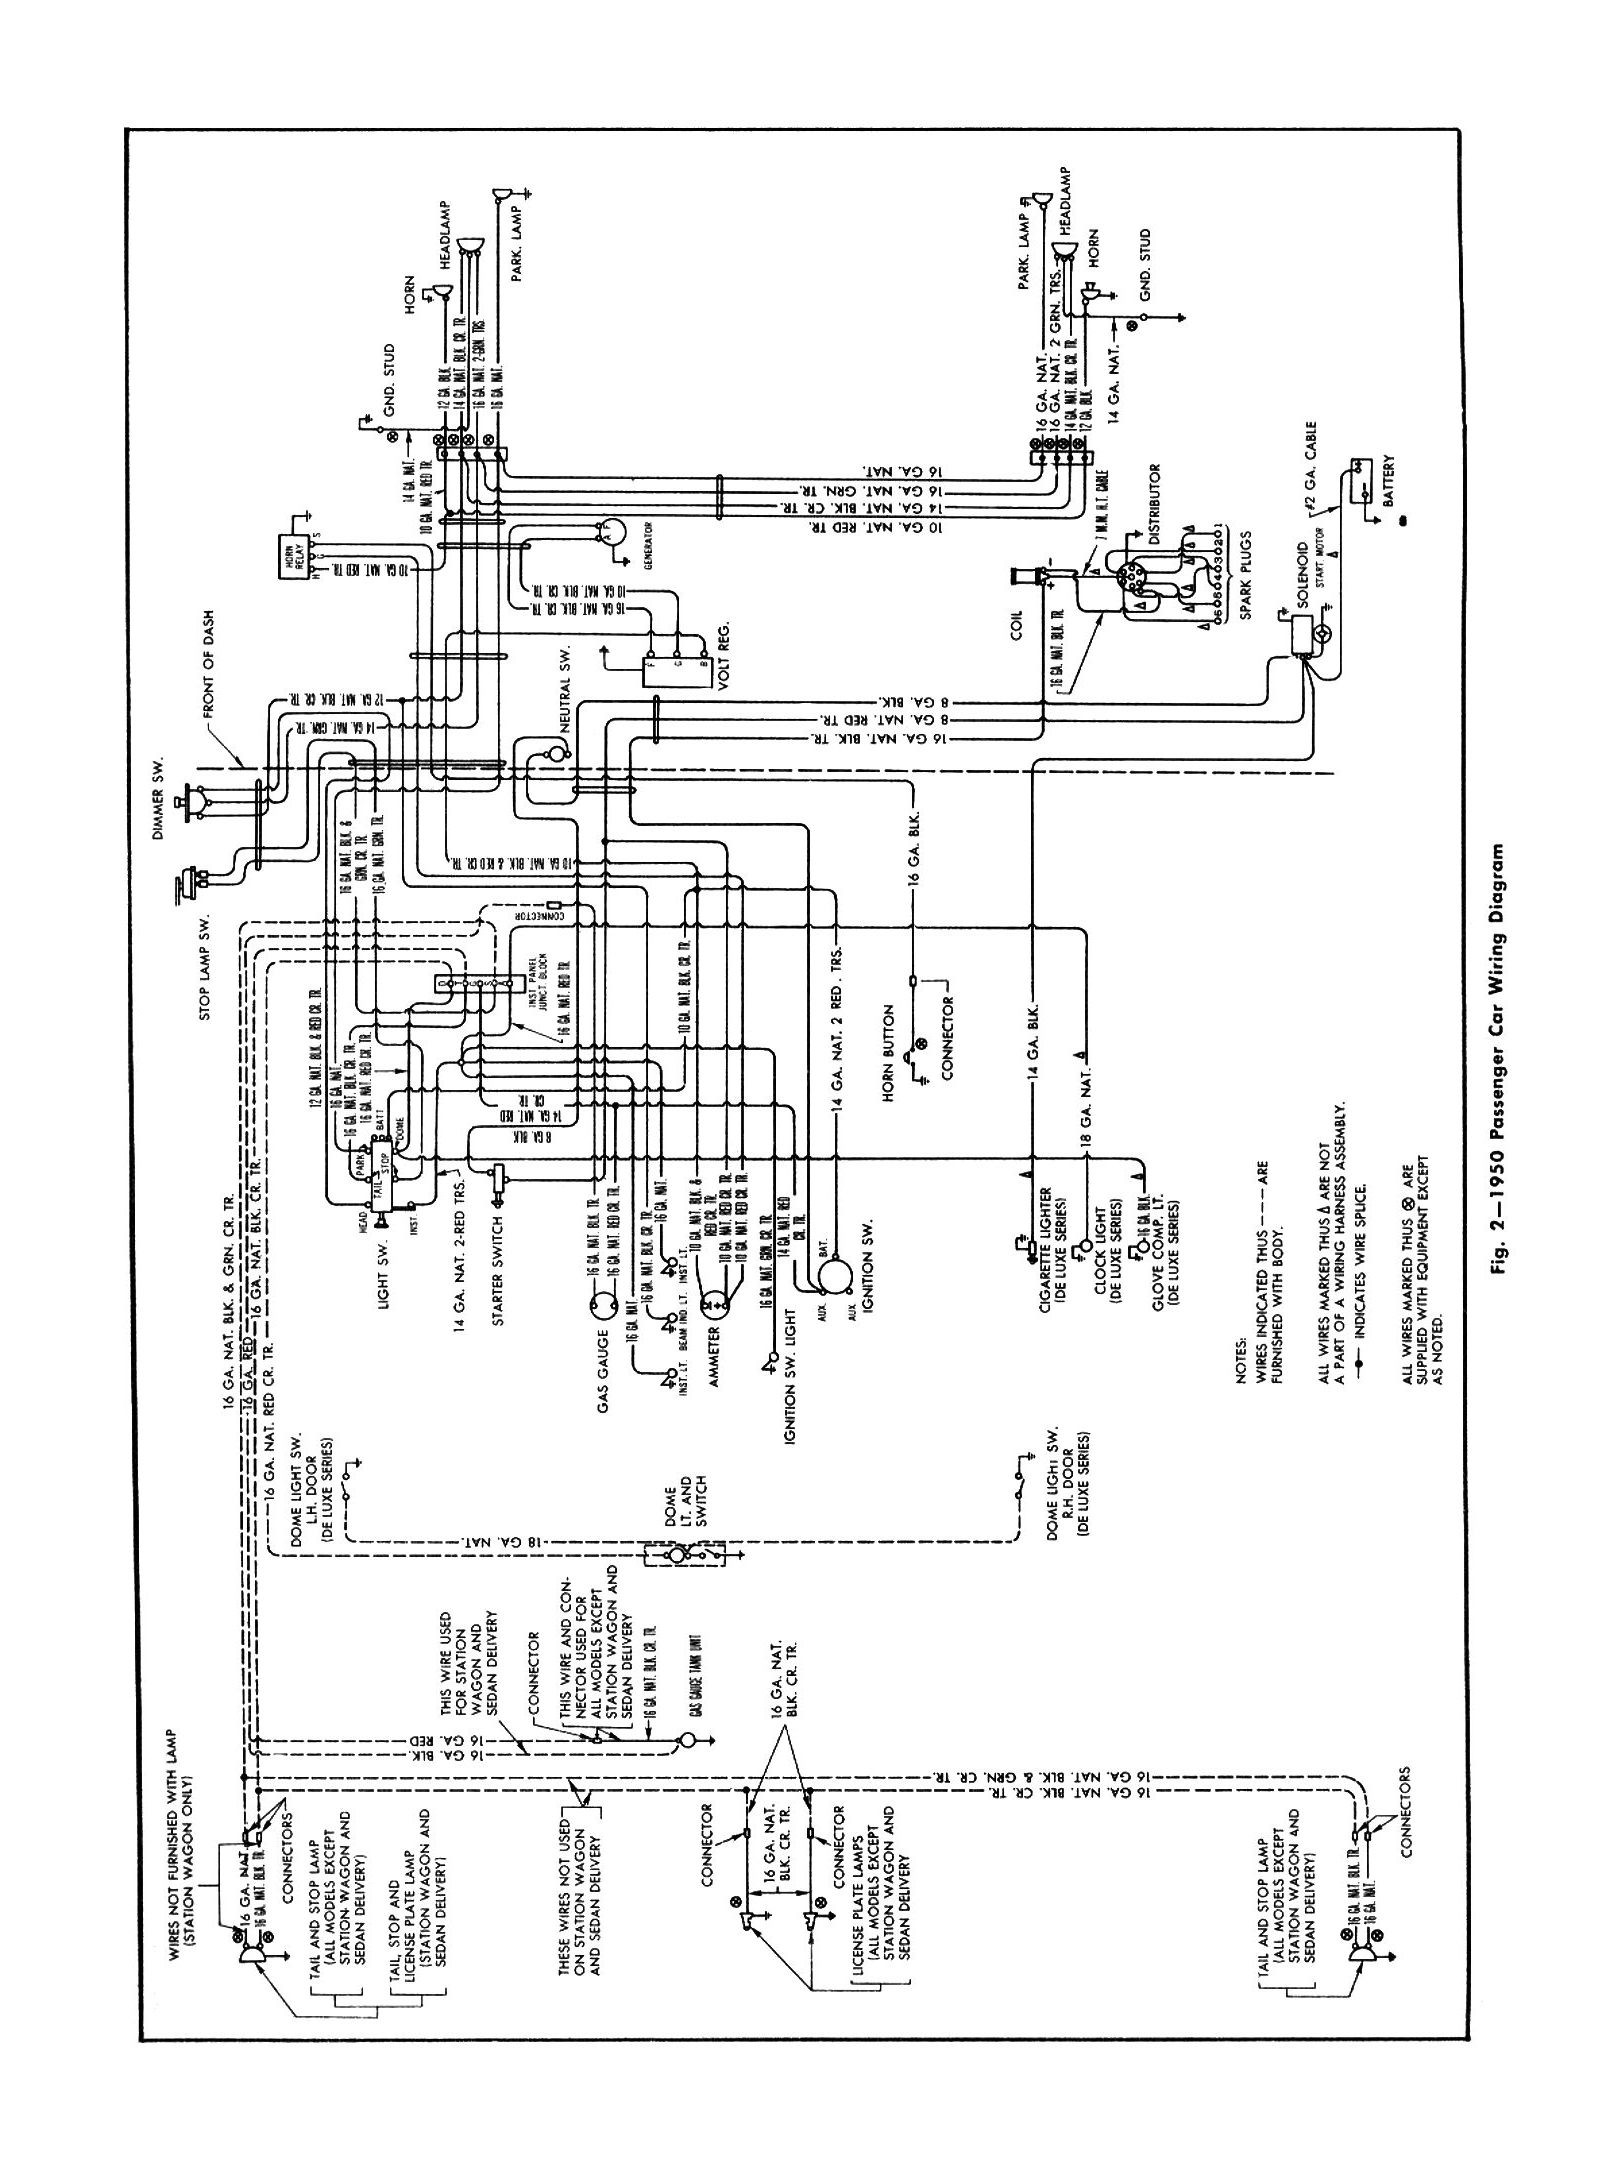 chevy wiring diagrams rh chevy oldcarmanualproject com 48 Ford PU Wiring 1998 Chevy Truck Wiring Diagram